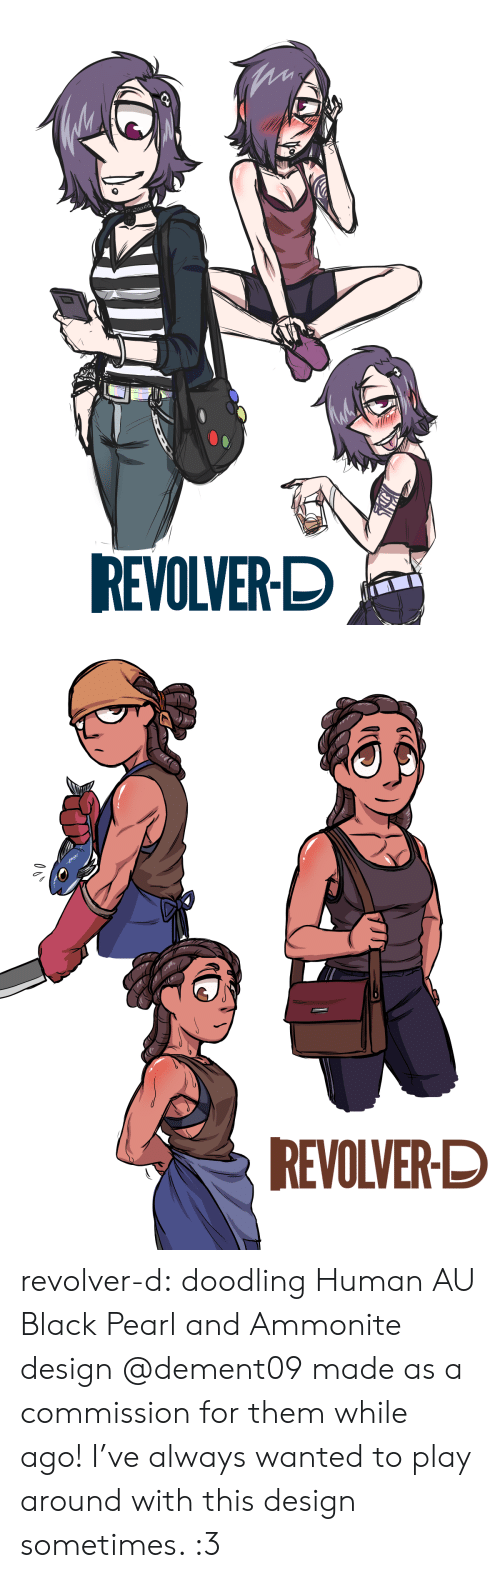 doodling: REVOLVER-D   REVOLVER-D revolver-d:    doodling Human AU Black Pearl and Ammonite design @dement09made as a commission for them while ago!I've always wanted to play around with this design sometimes. :3